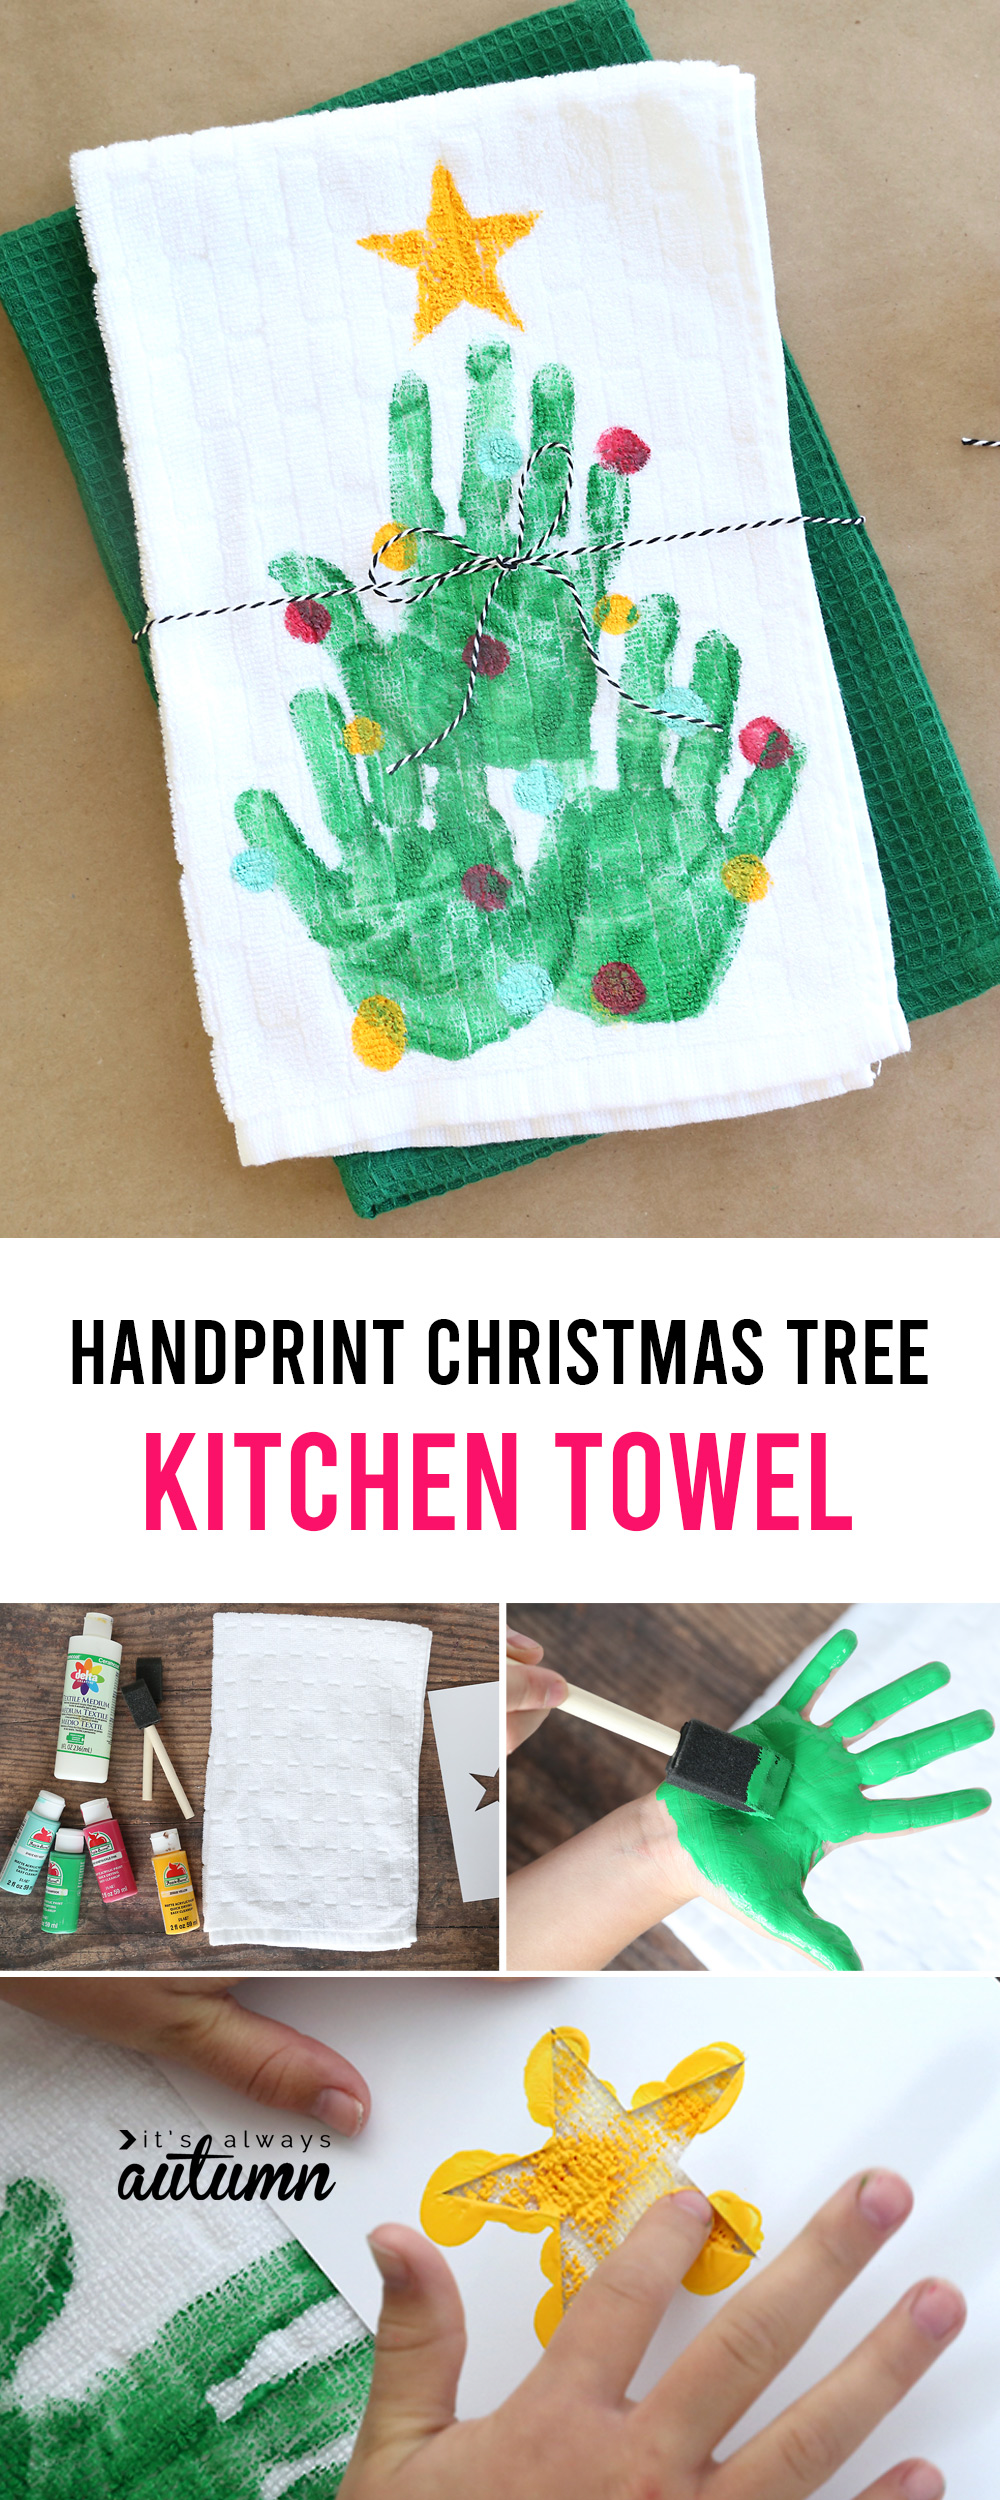 Cute idea! Make a handprint Christmas tree kitchen towel - fun homemade Christmas gift idea.